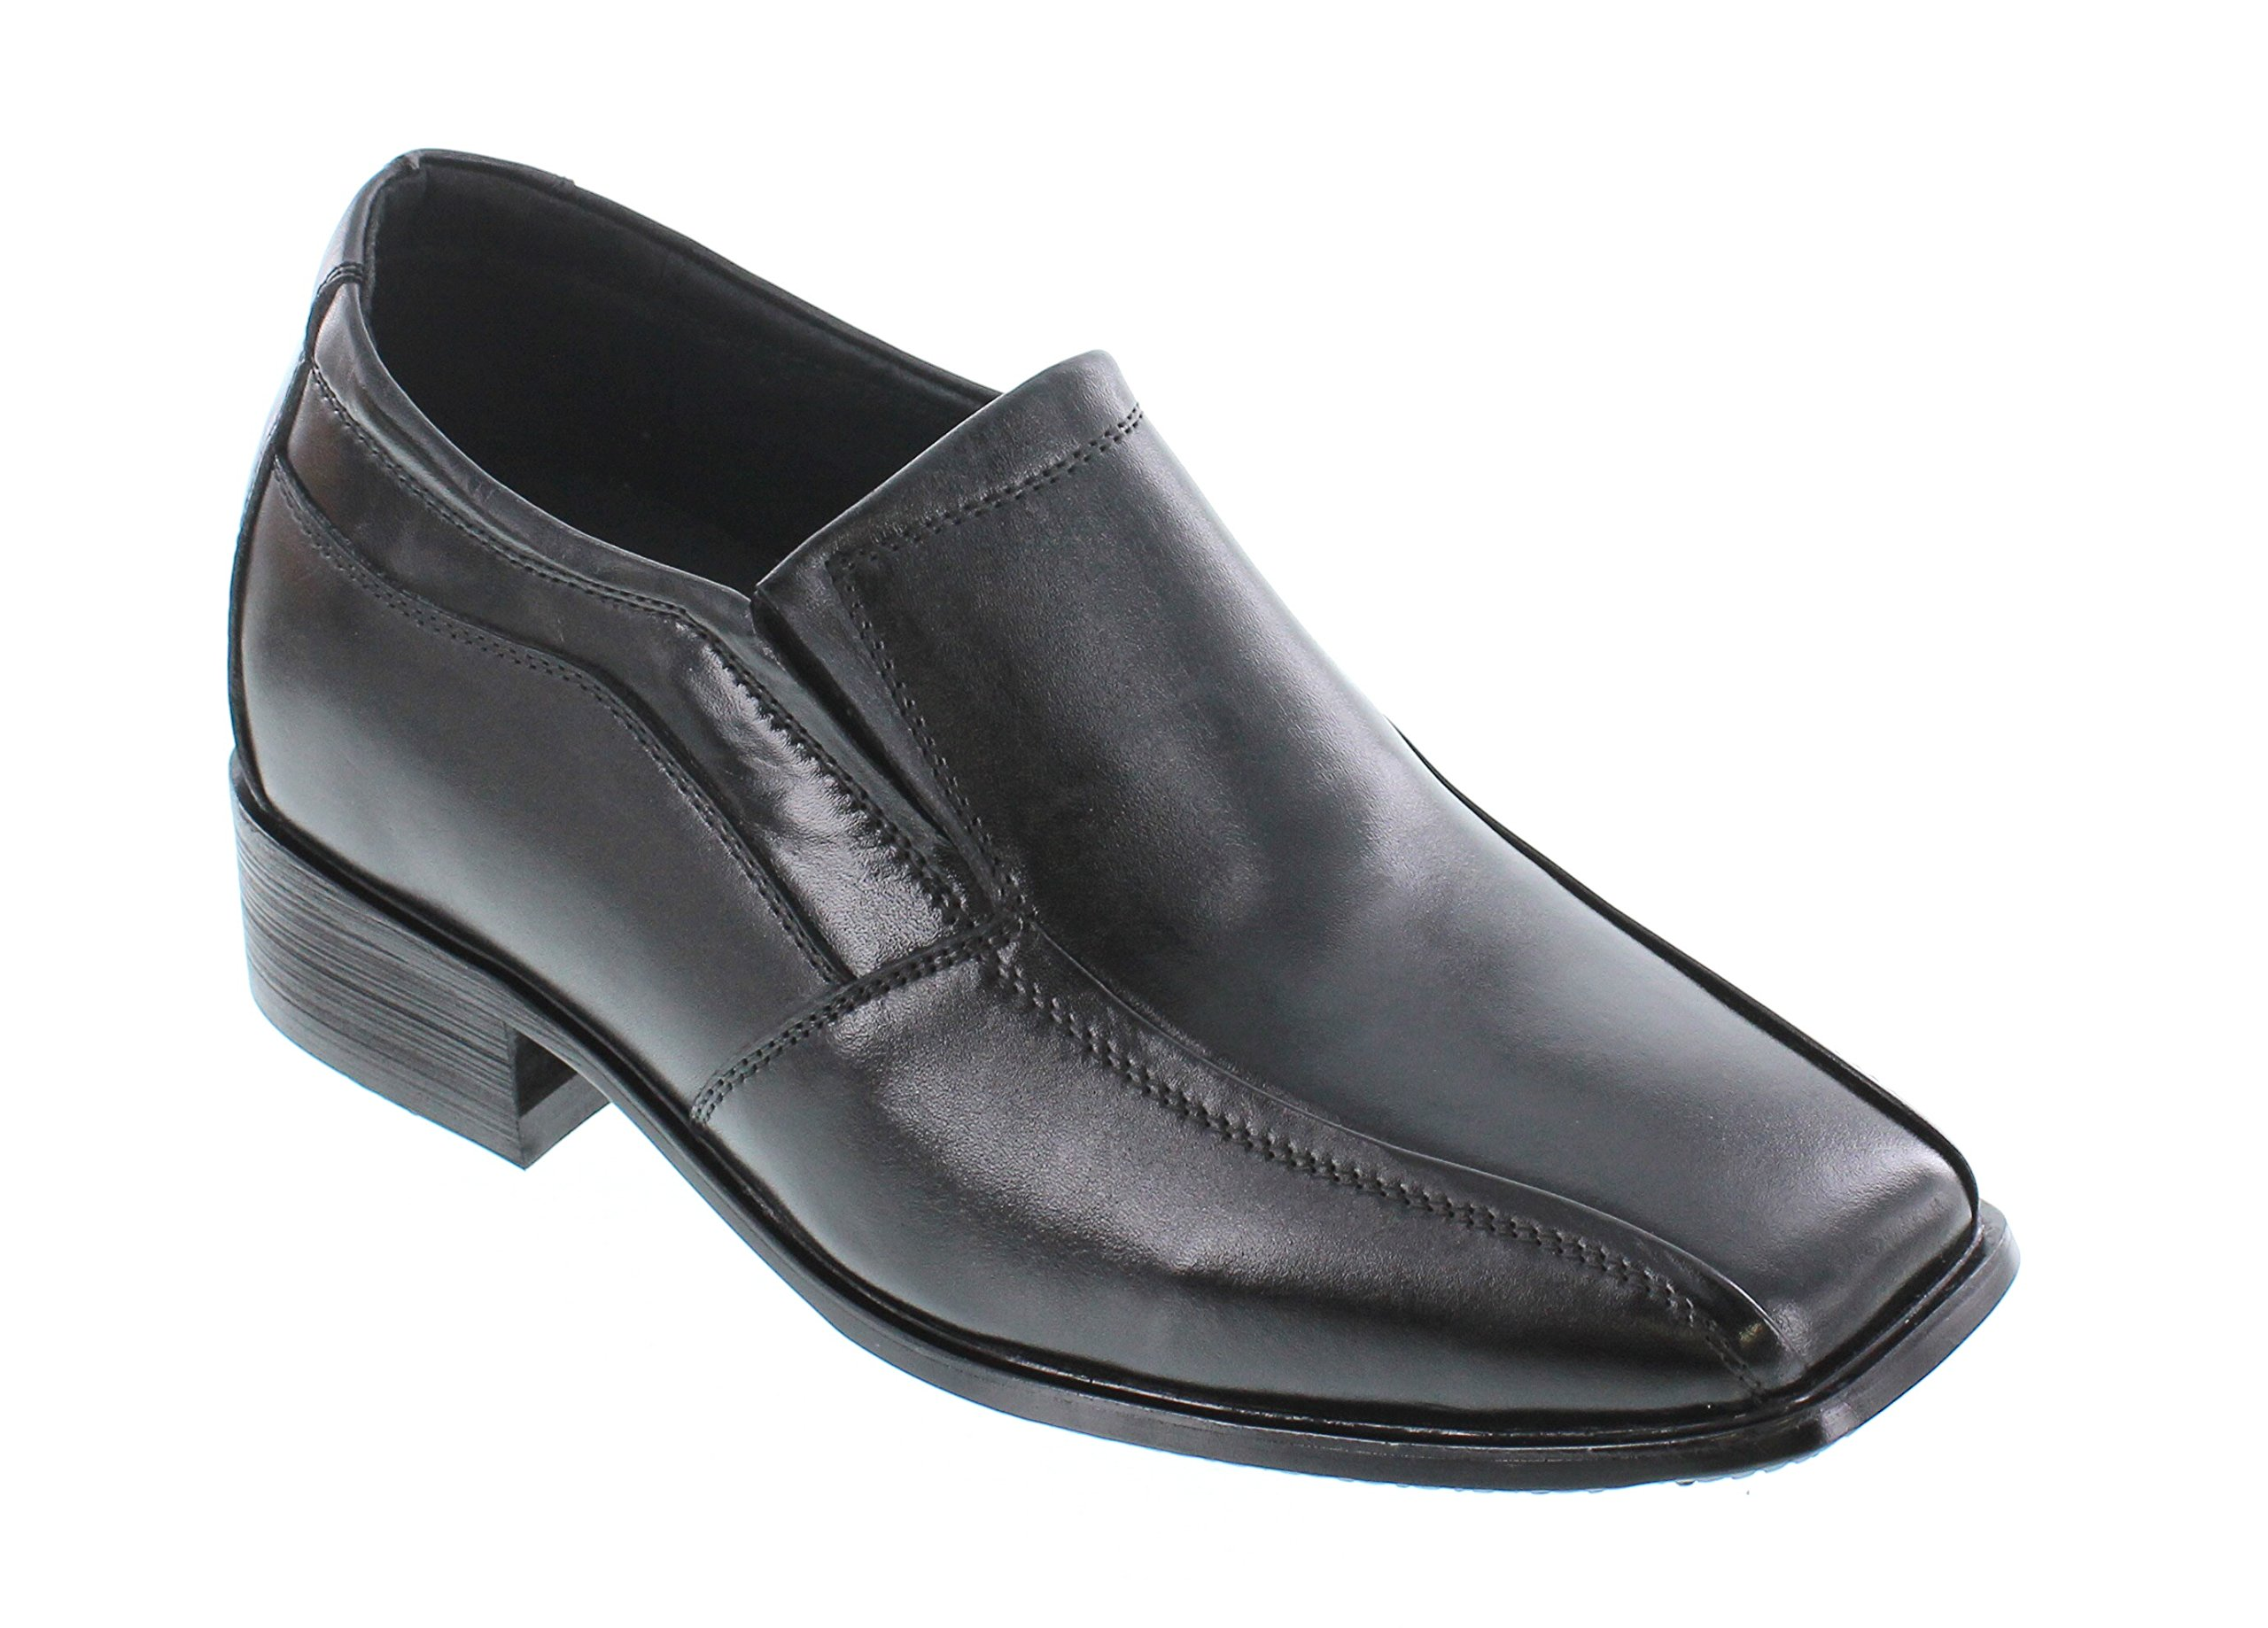 CALDEN K0285-2.8 inches Taller - Size 11 D US - Height Increasing Shoes for Men (Black Slip On Bicycle Square Toe)